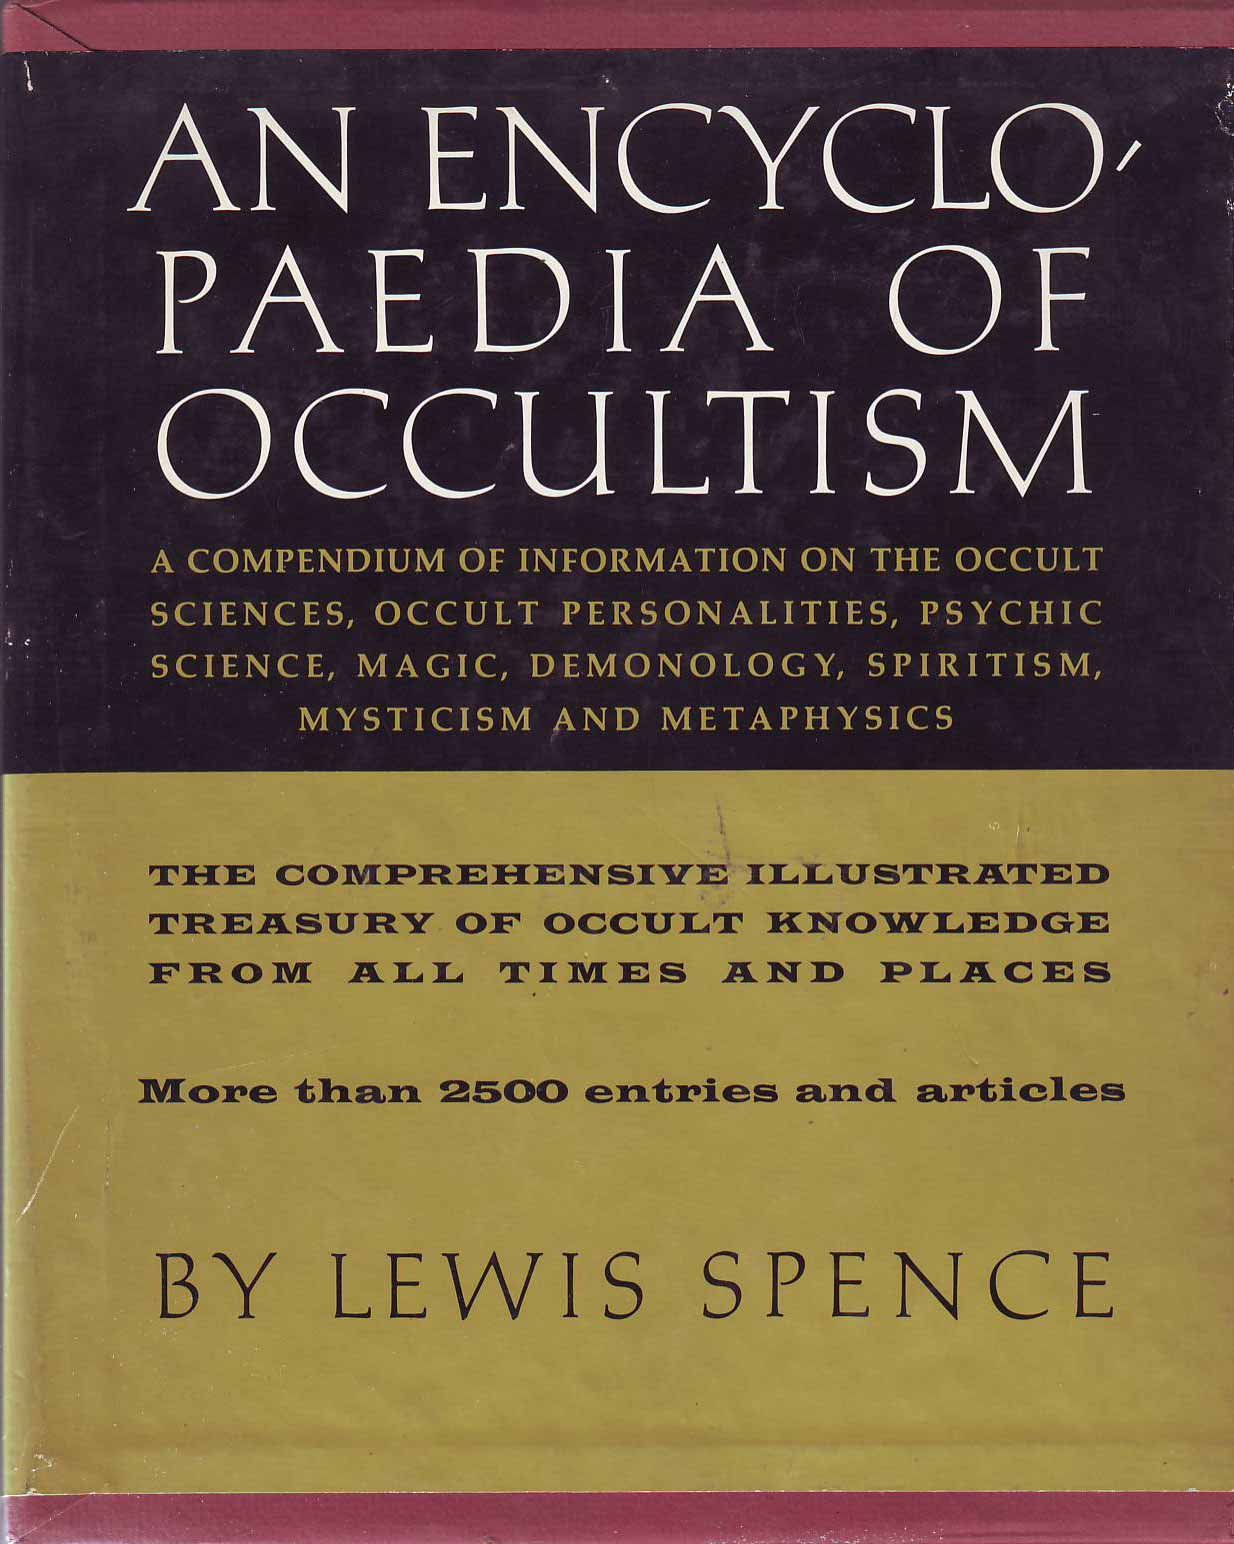 Download An Encyclopaedia of Occultism: A Compendium of Information on the Occult Sciences, Occult Personalities, Psychic Science, Magic, Demonology, Spiritism, Mysticism, and Metaphysics pdf